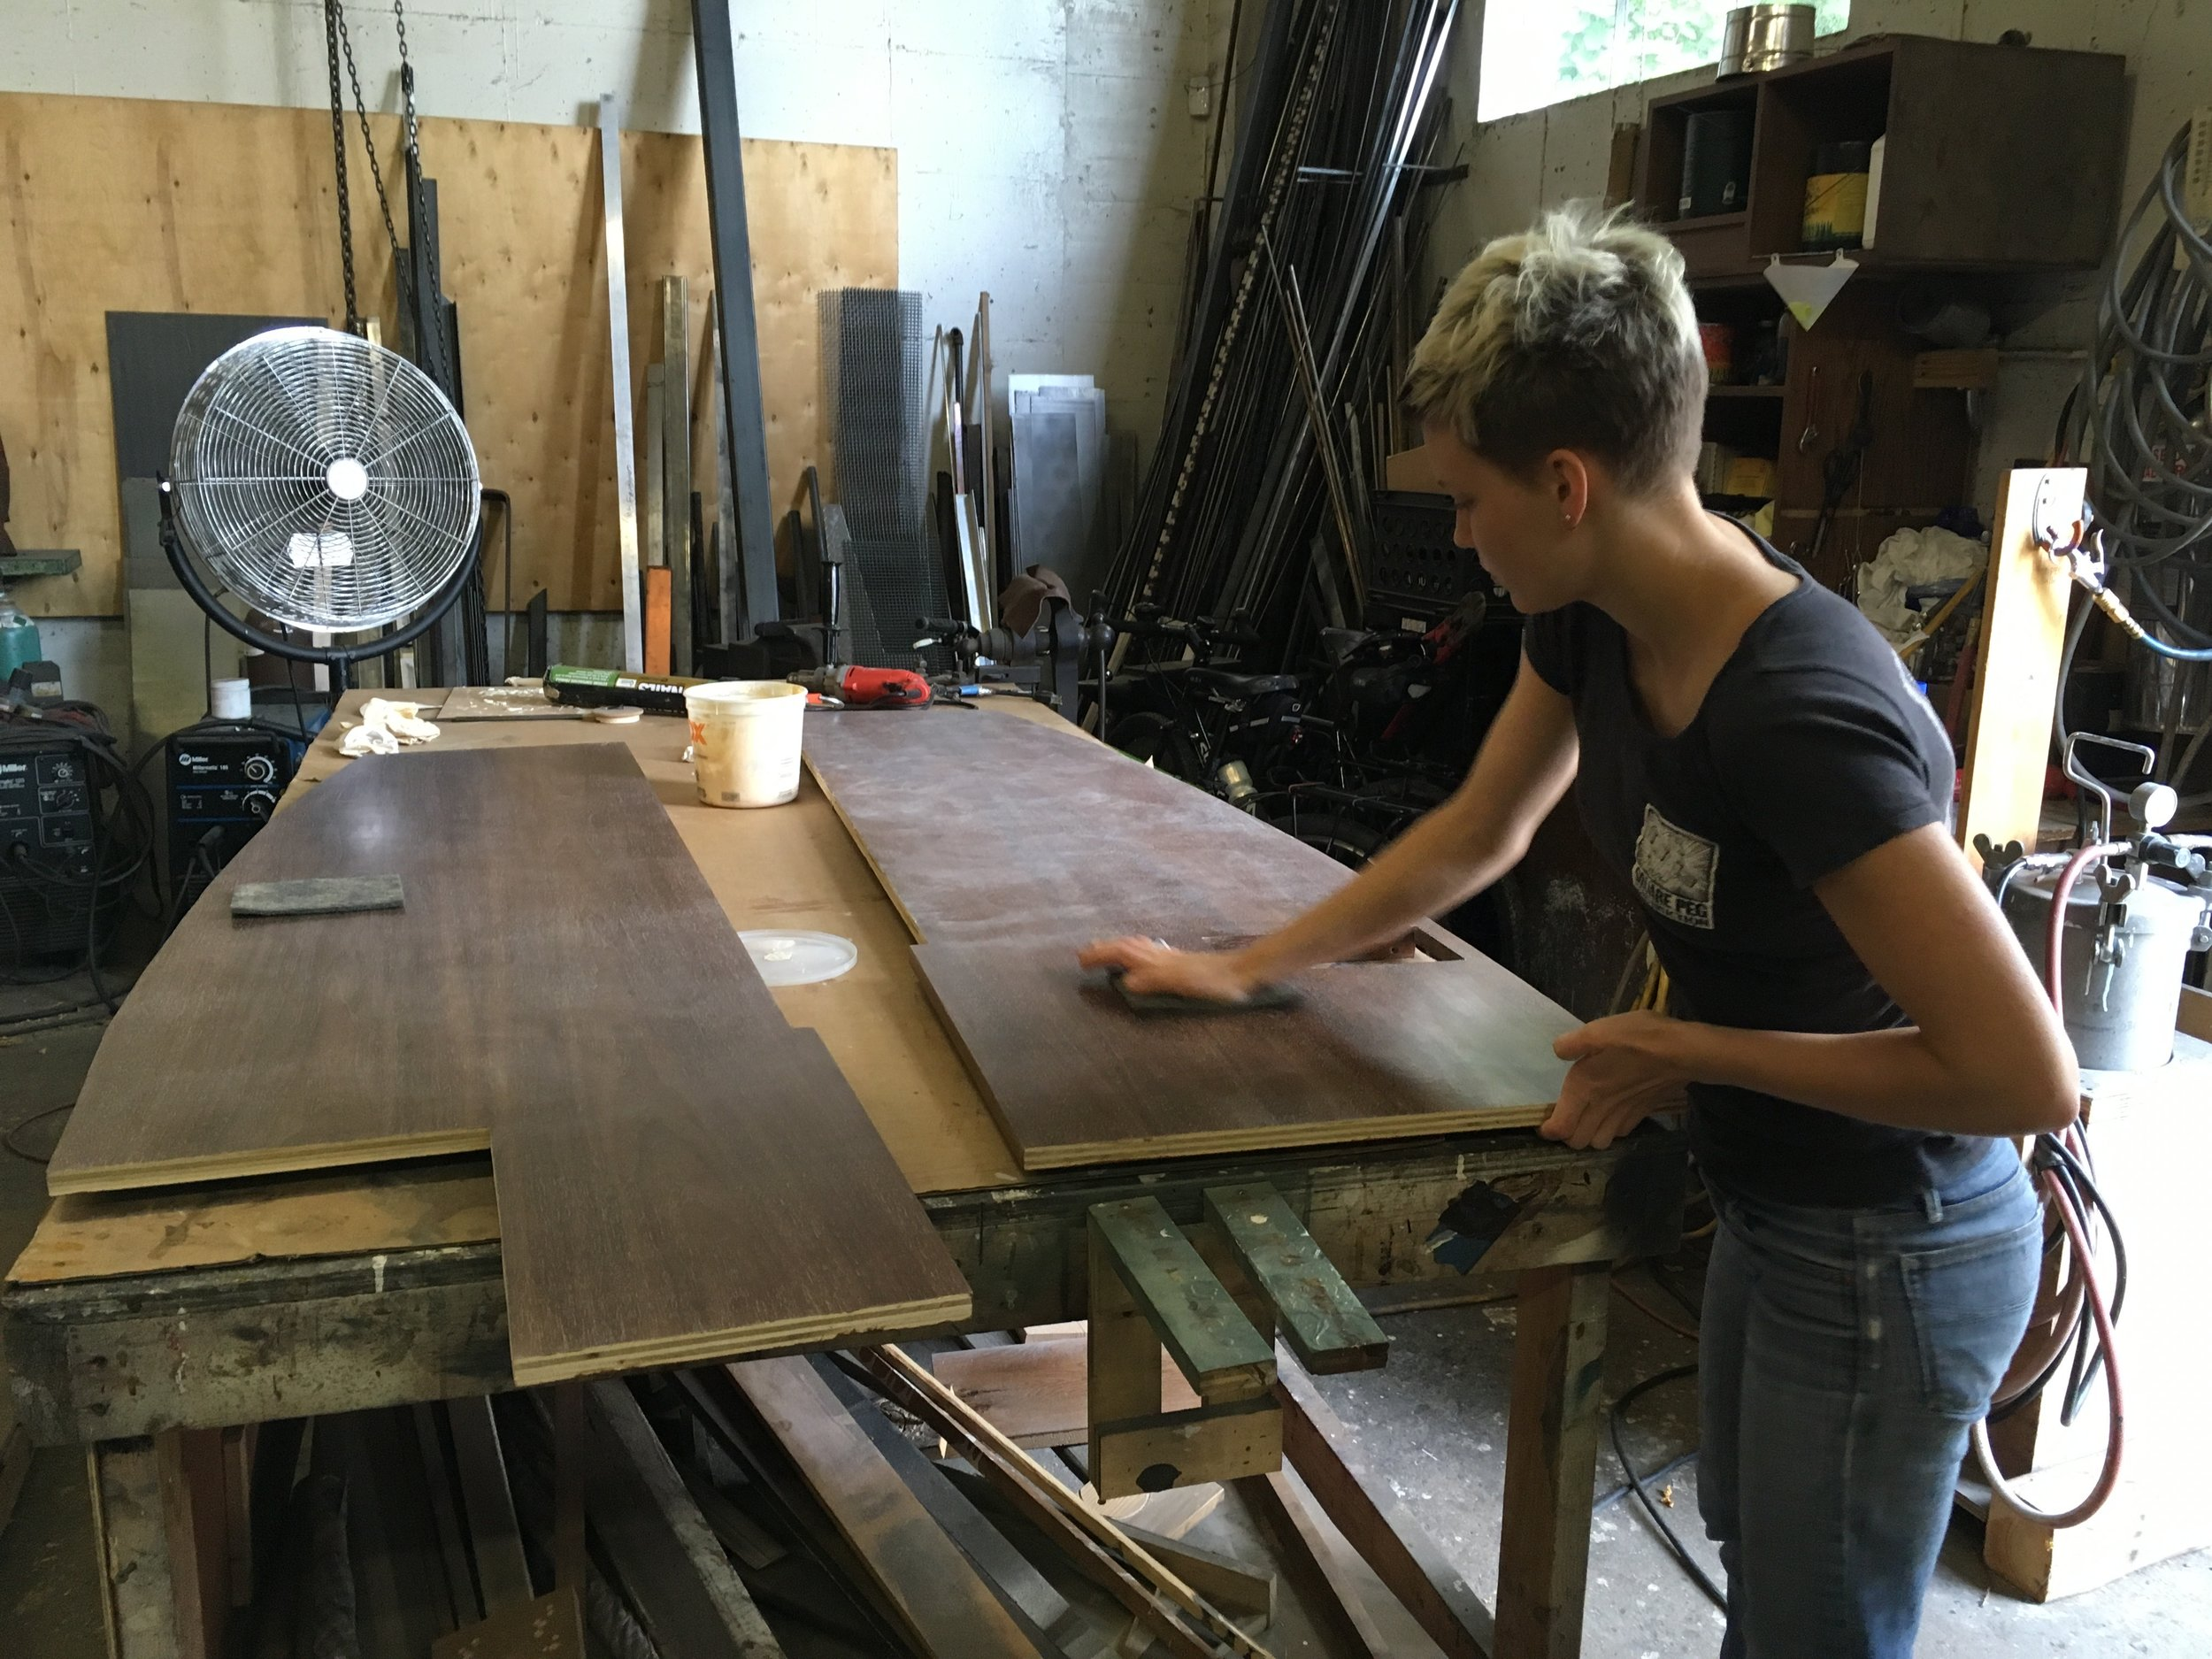 Do you want to spend hours scrubbing custom wax finishes onto walnut ply?